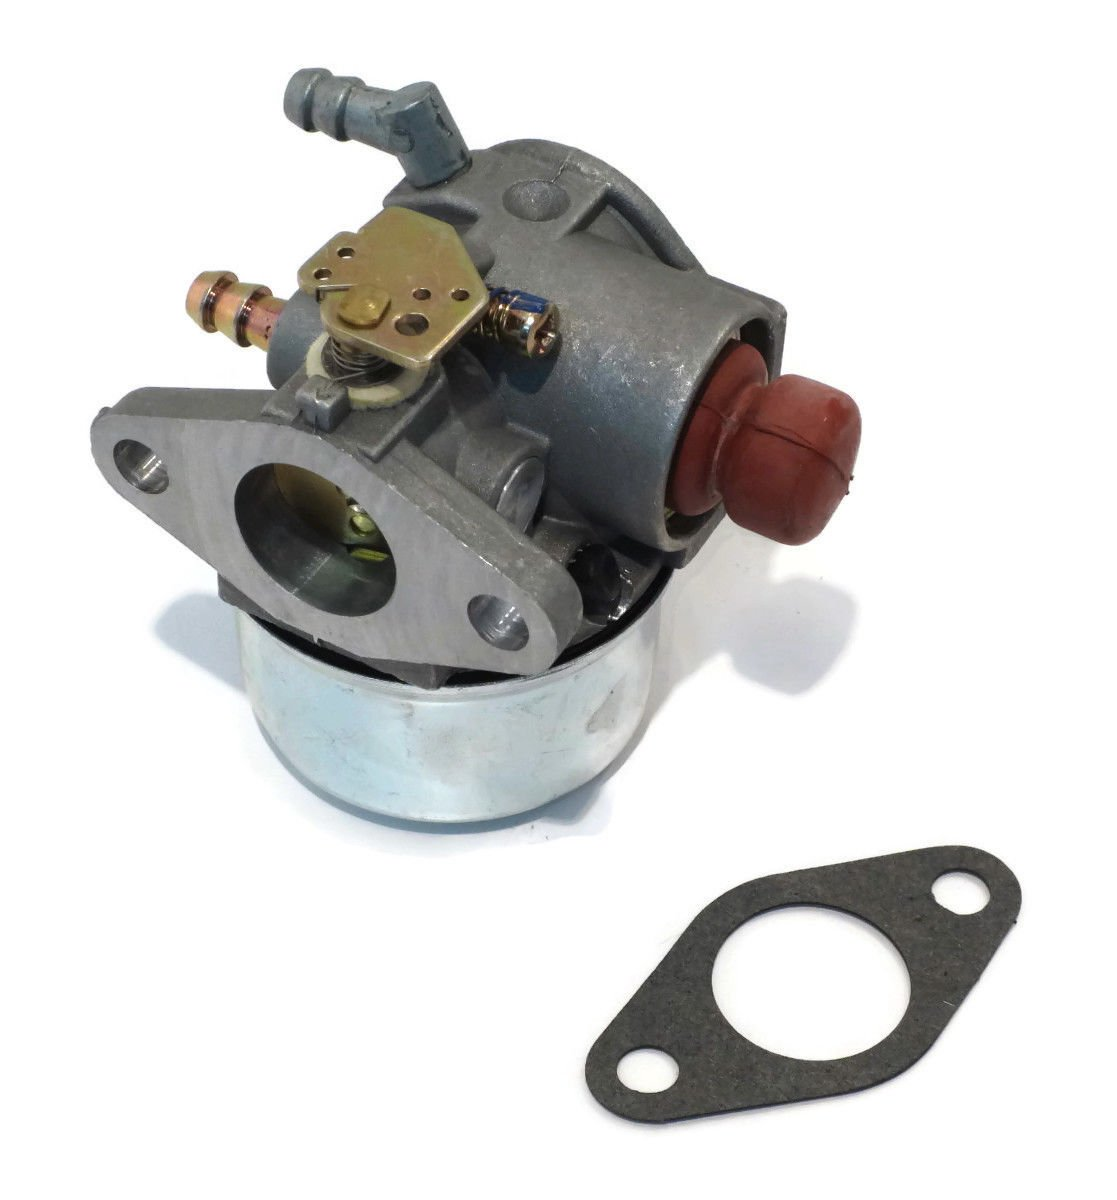 The ROP Shop New Carburetor Carb Replacement for Tecumseh 640117 640126 fit OHH45 OHH50 Motor by The ROP Shop